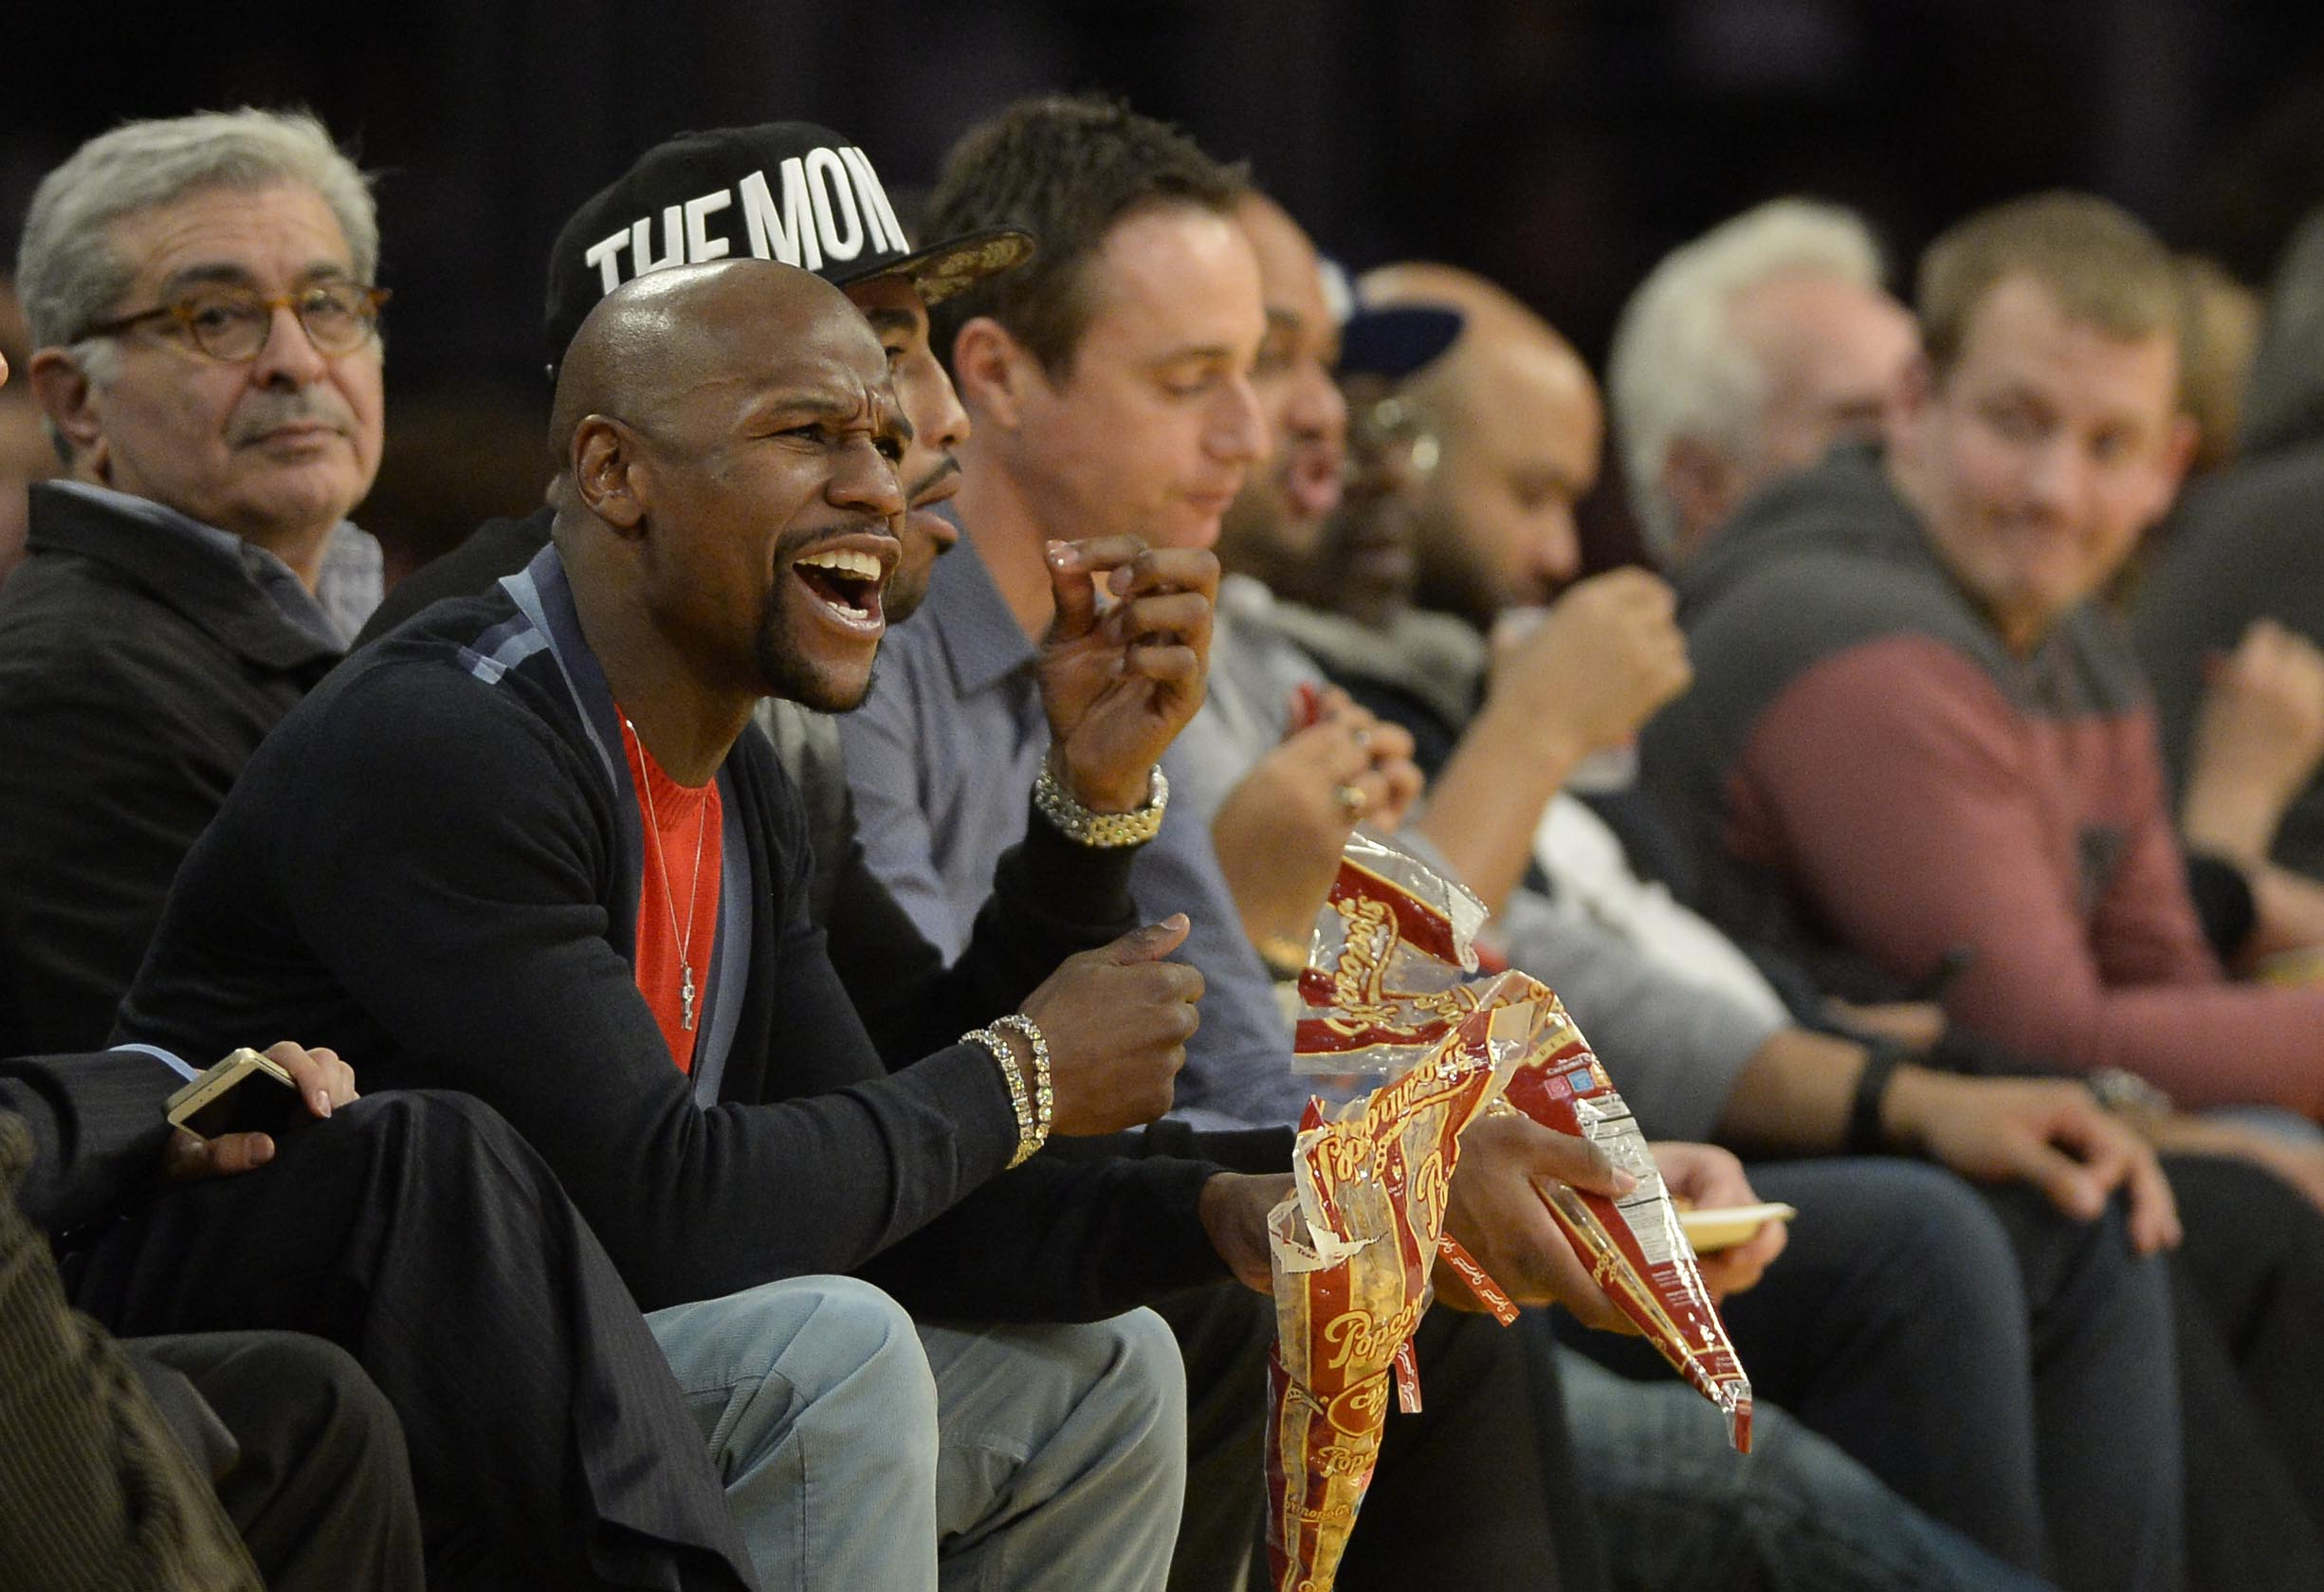 Floyd Mayweather and Matt Barnes were screaming at each other at the Clippers-Cavs game